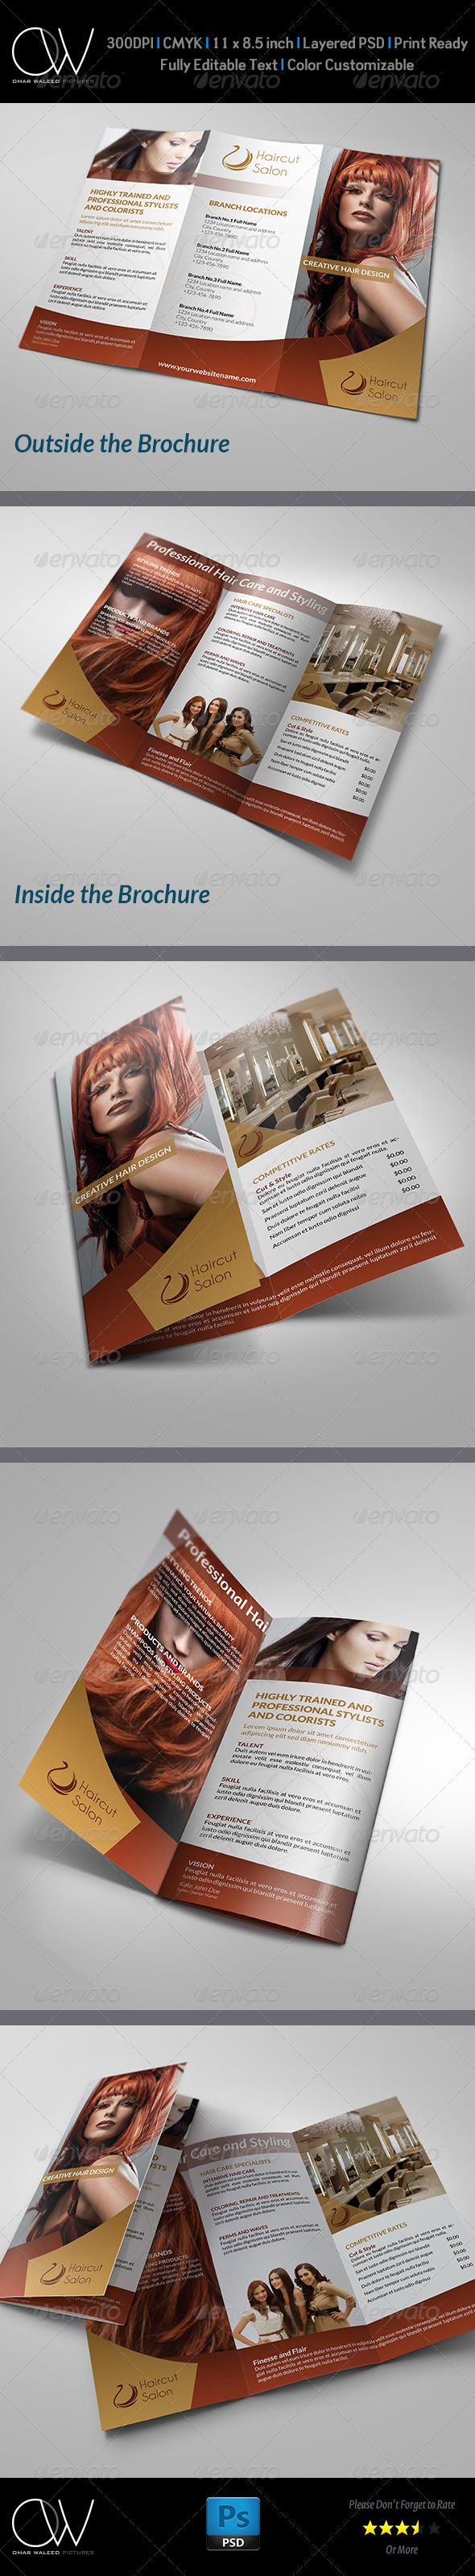 Hair Stylist & Salon Tri-Fold Brochure - Brochures Print Templates